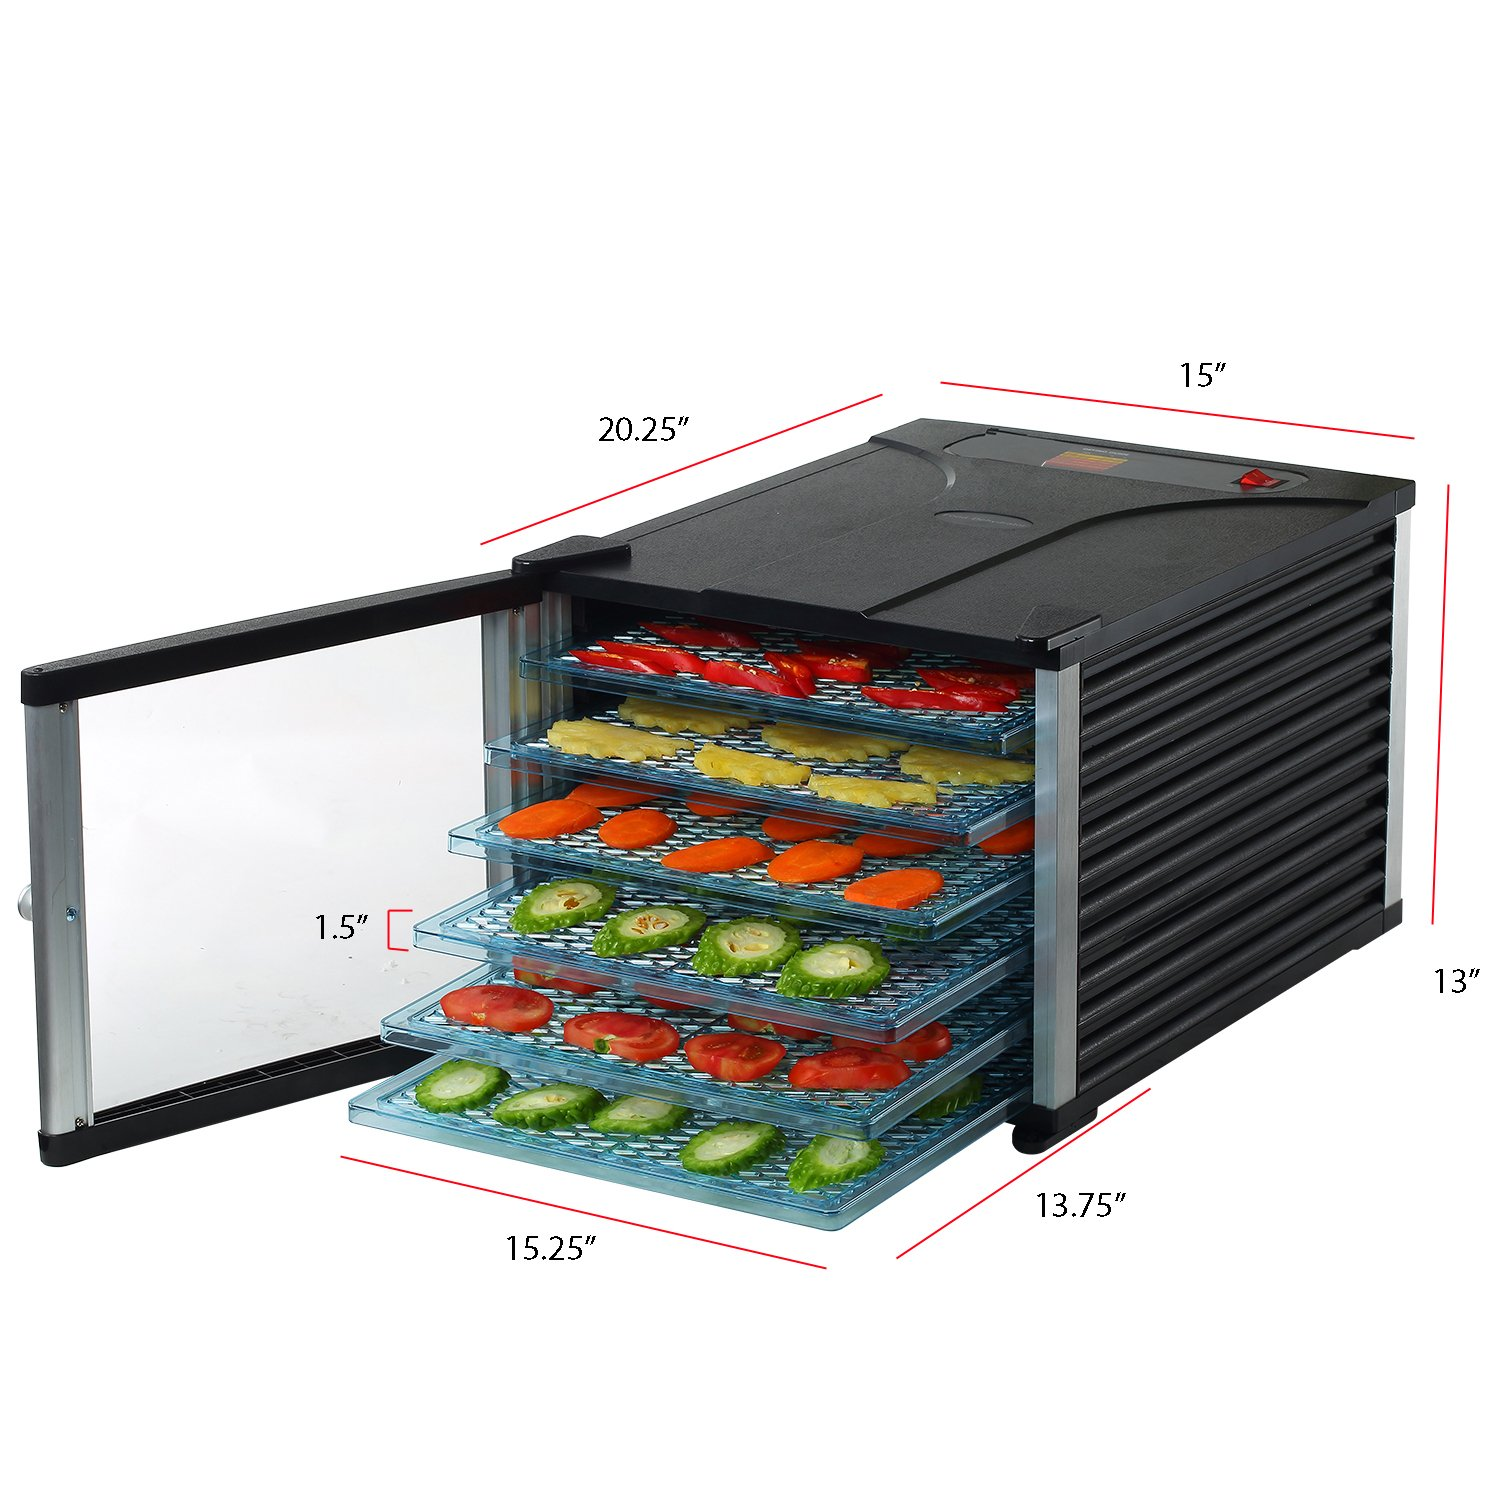 HomCom 6 Tray 630W Fruit and Vegetable Dryer Food Dehydrator w/Timer